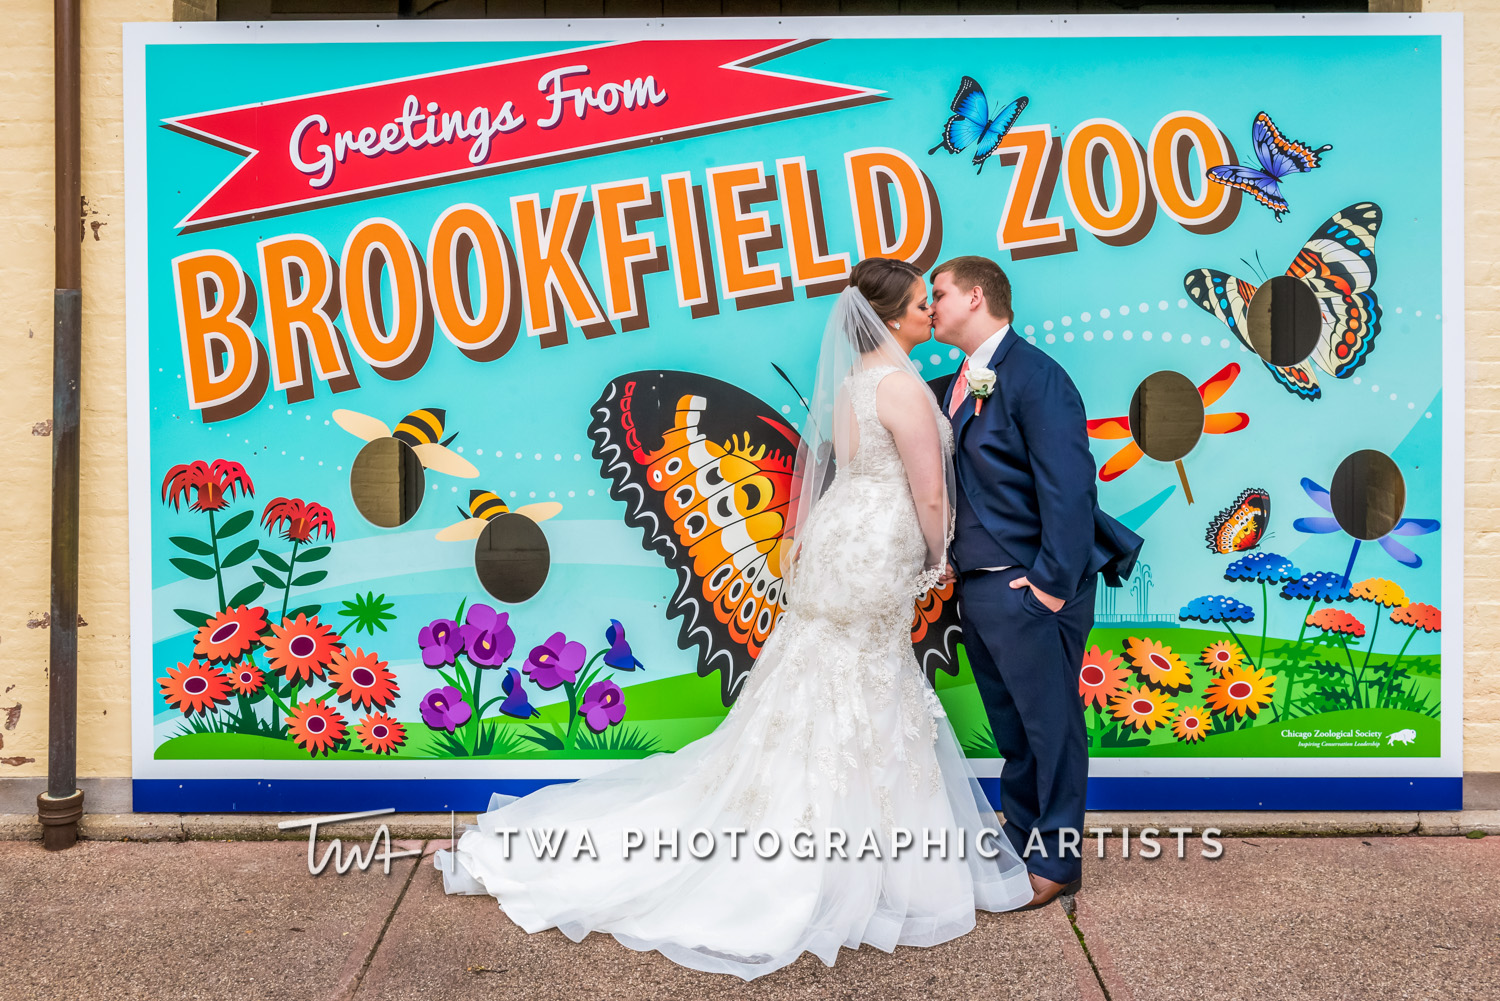 Weddings at The Brookfield Zoo | TWA Photographic Artists | Chicago Wedding Photographers